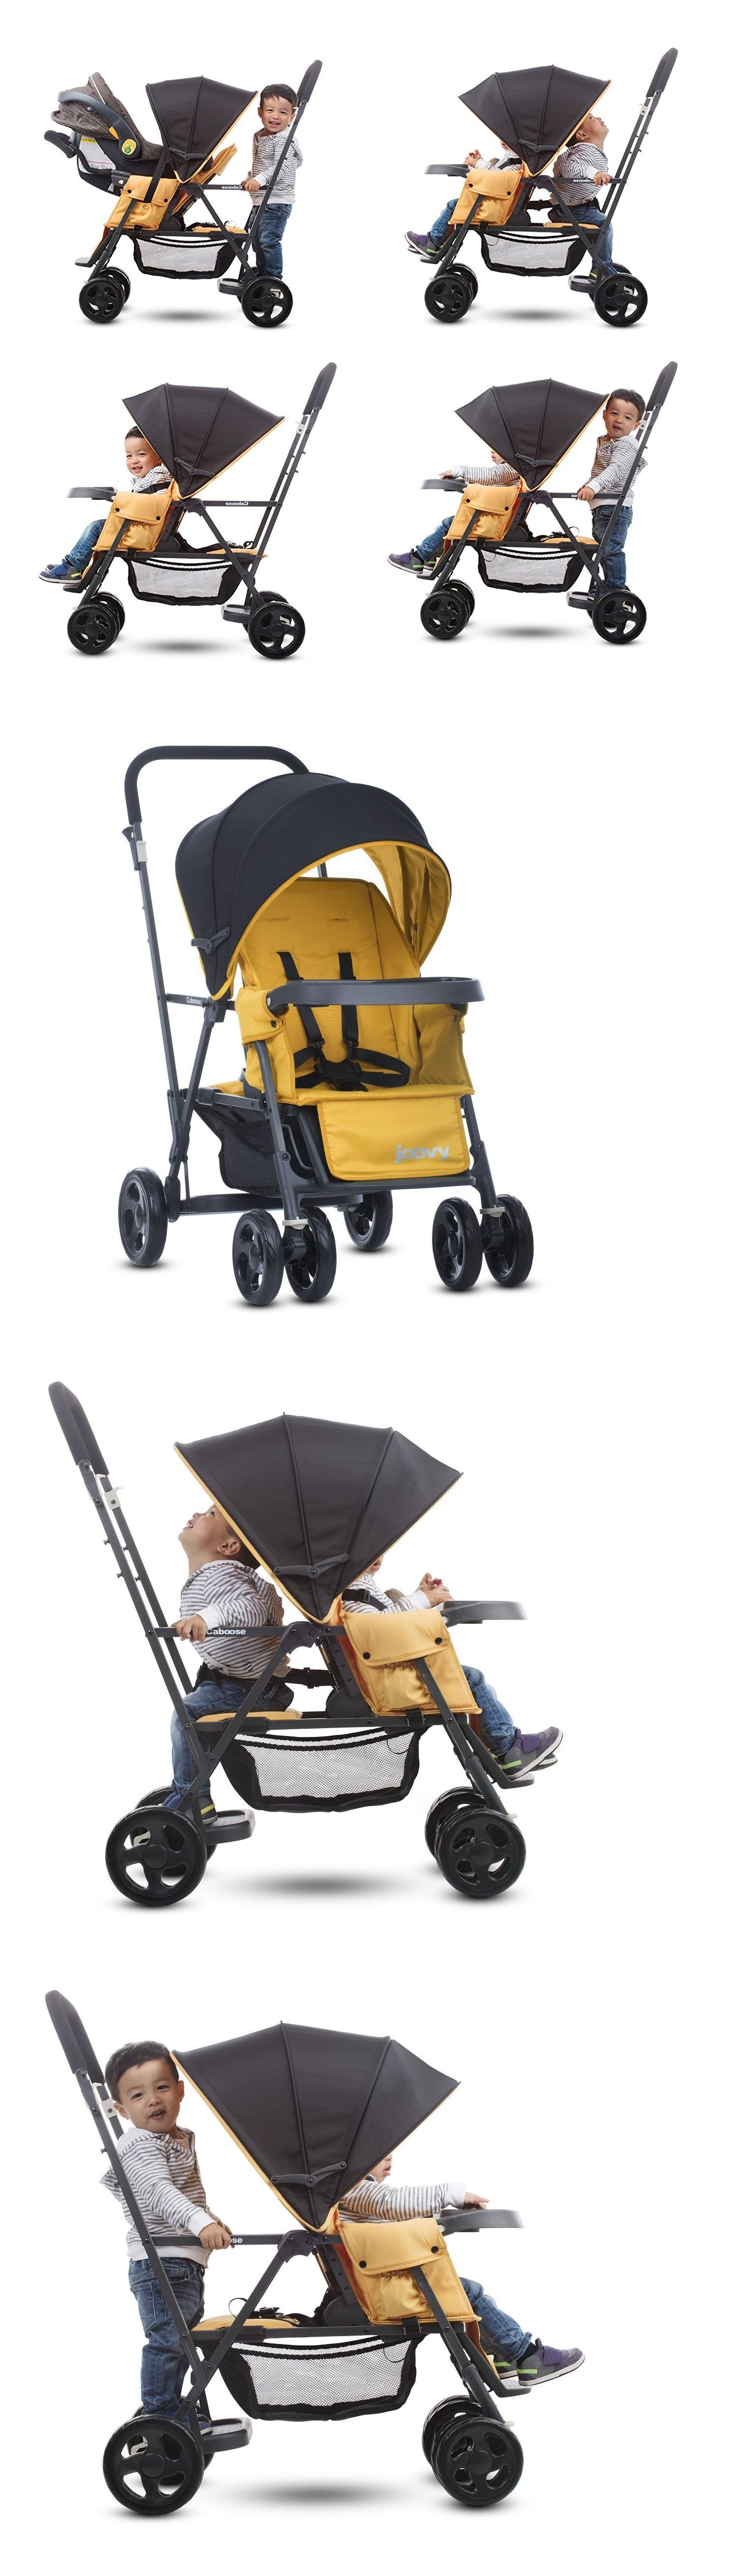 Baby Sit And Stand Stroller Infant Toddler Double Kids Tandem With Car Seat Adapter